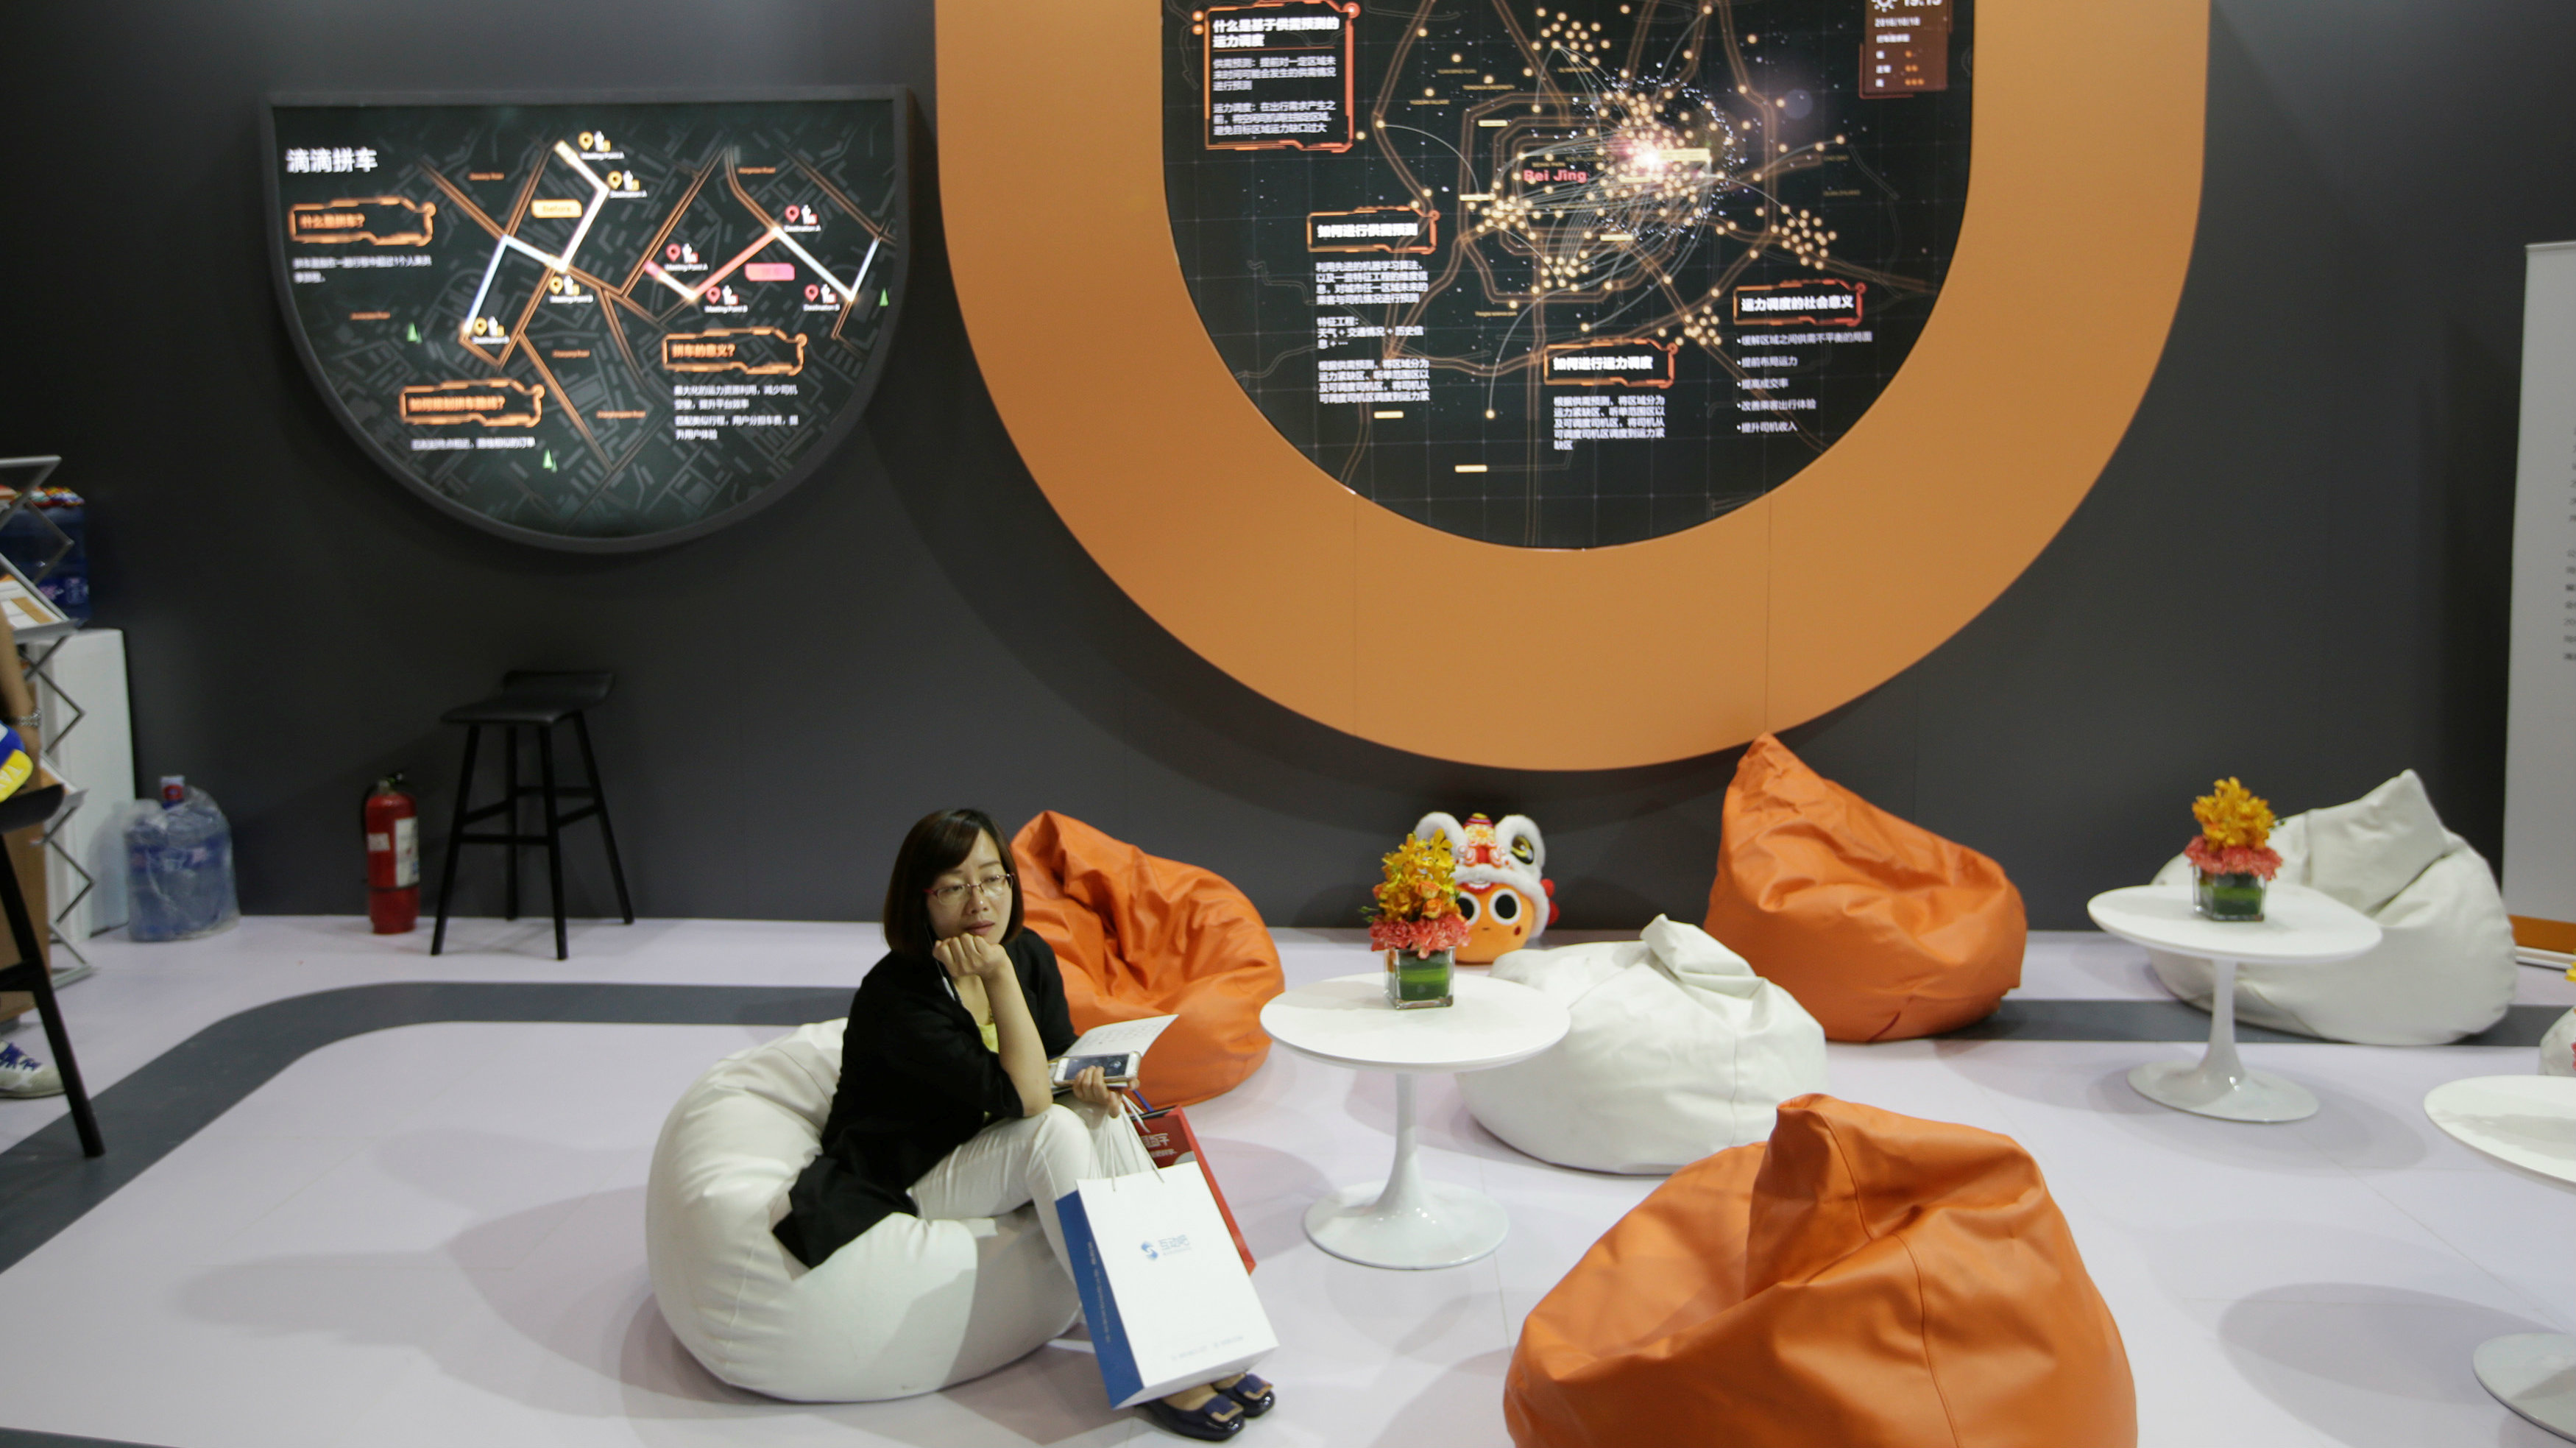 A woman sits at Didi Chuxing's booth at the Global Mobile Internet Conference (GMIC) 2017 in Beijing, China